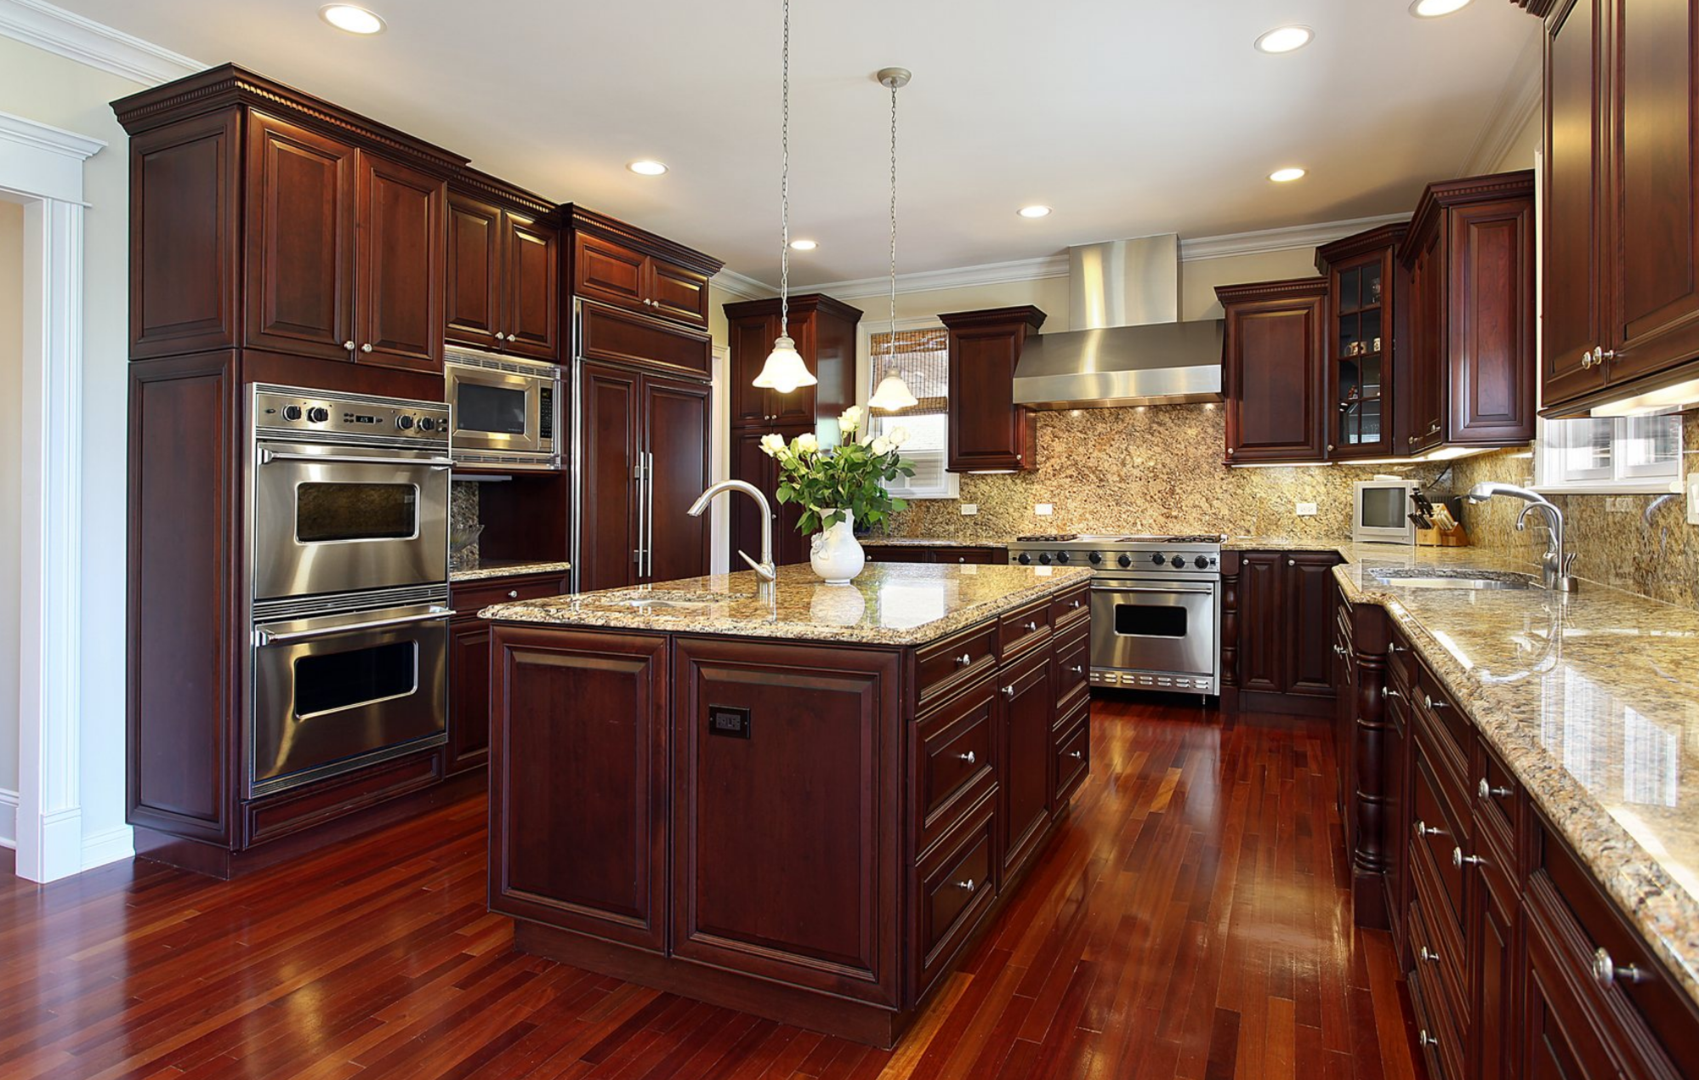 Sarasota Kitchen Remodeling Contractor